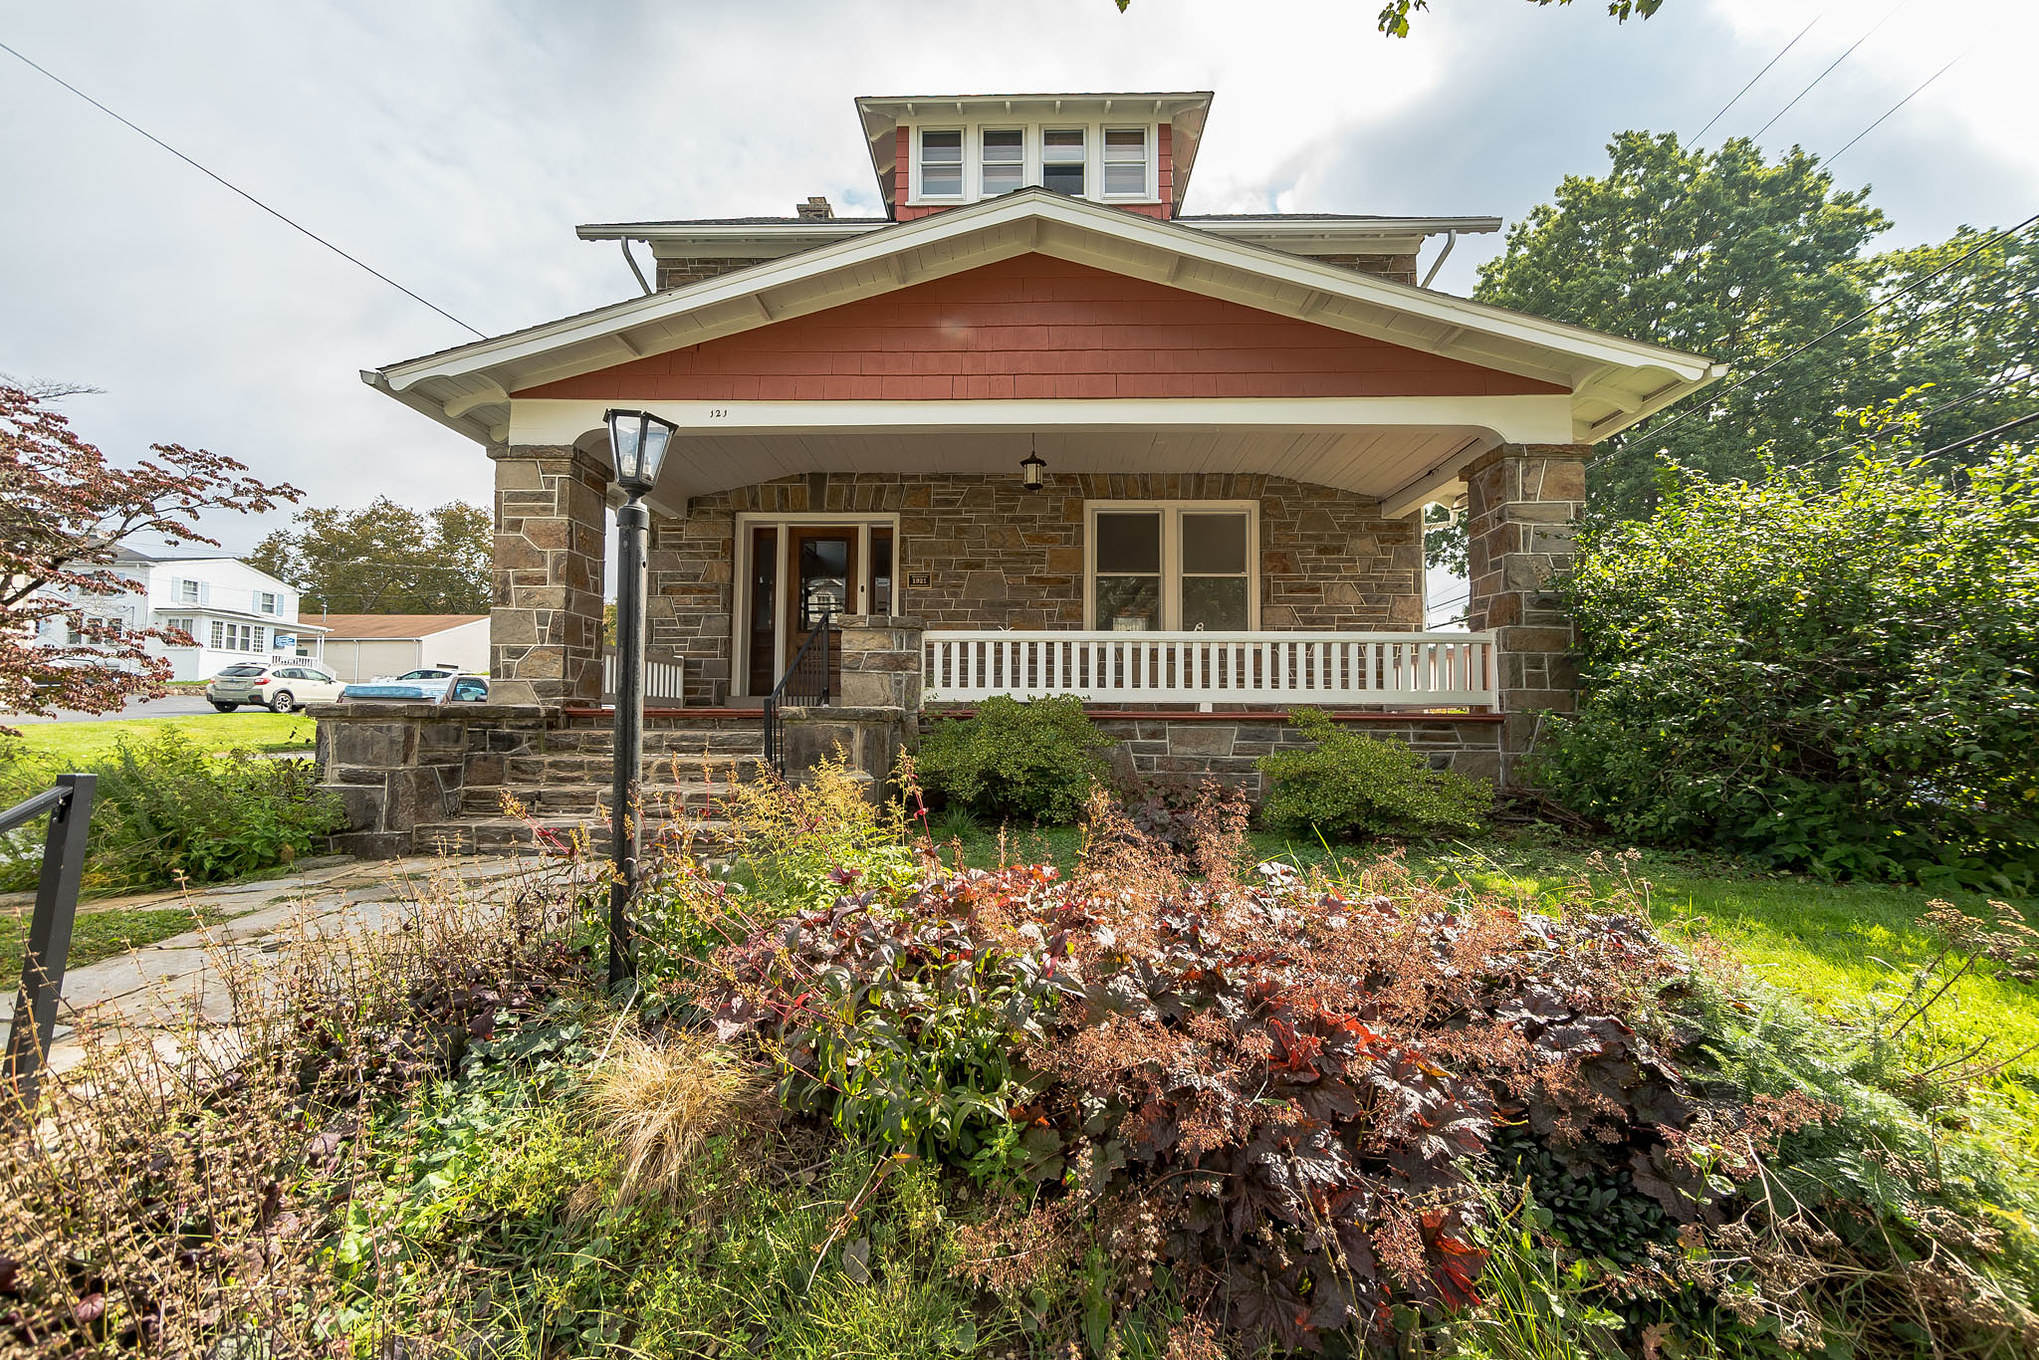 121 Meredith St, Kennett Square, PA 19348 | RealEstate.com